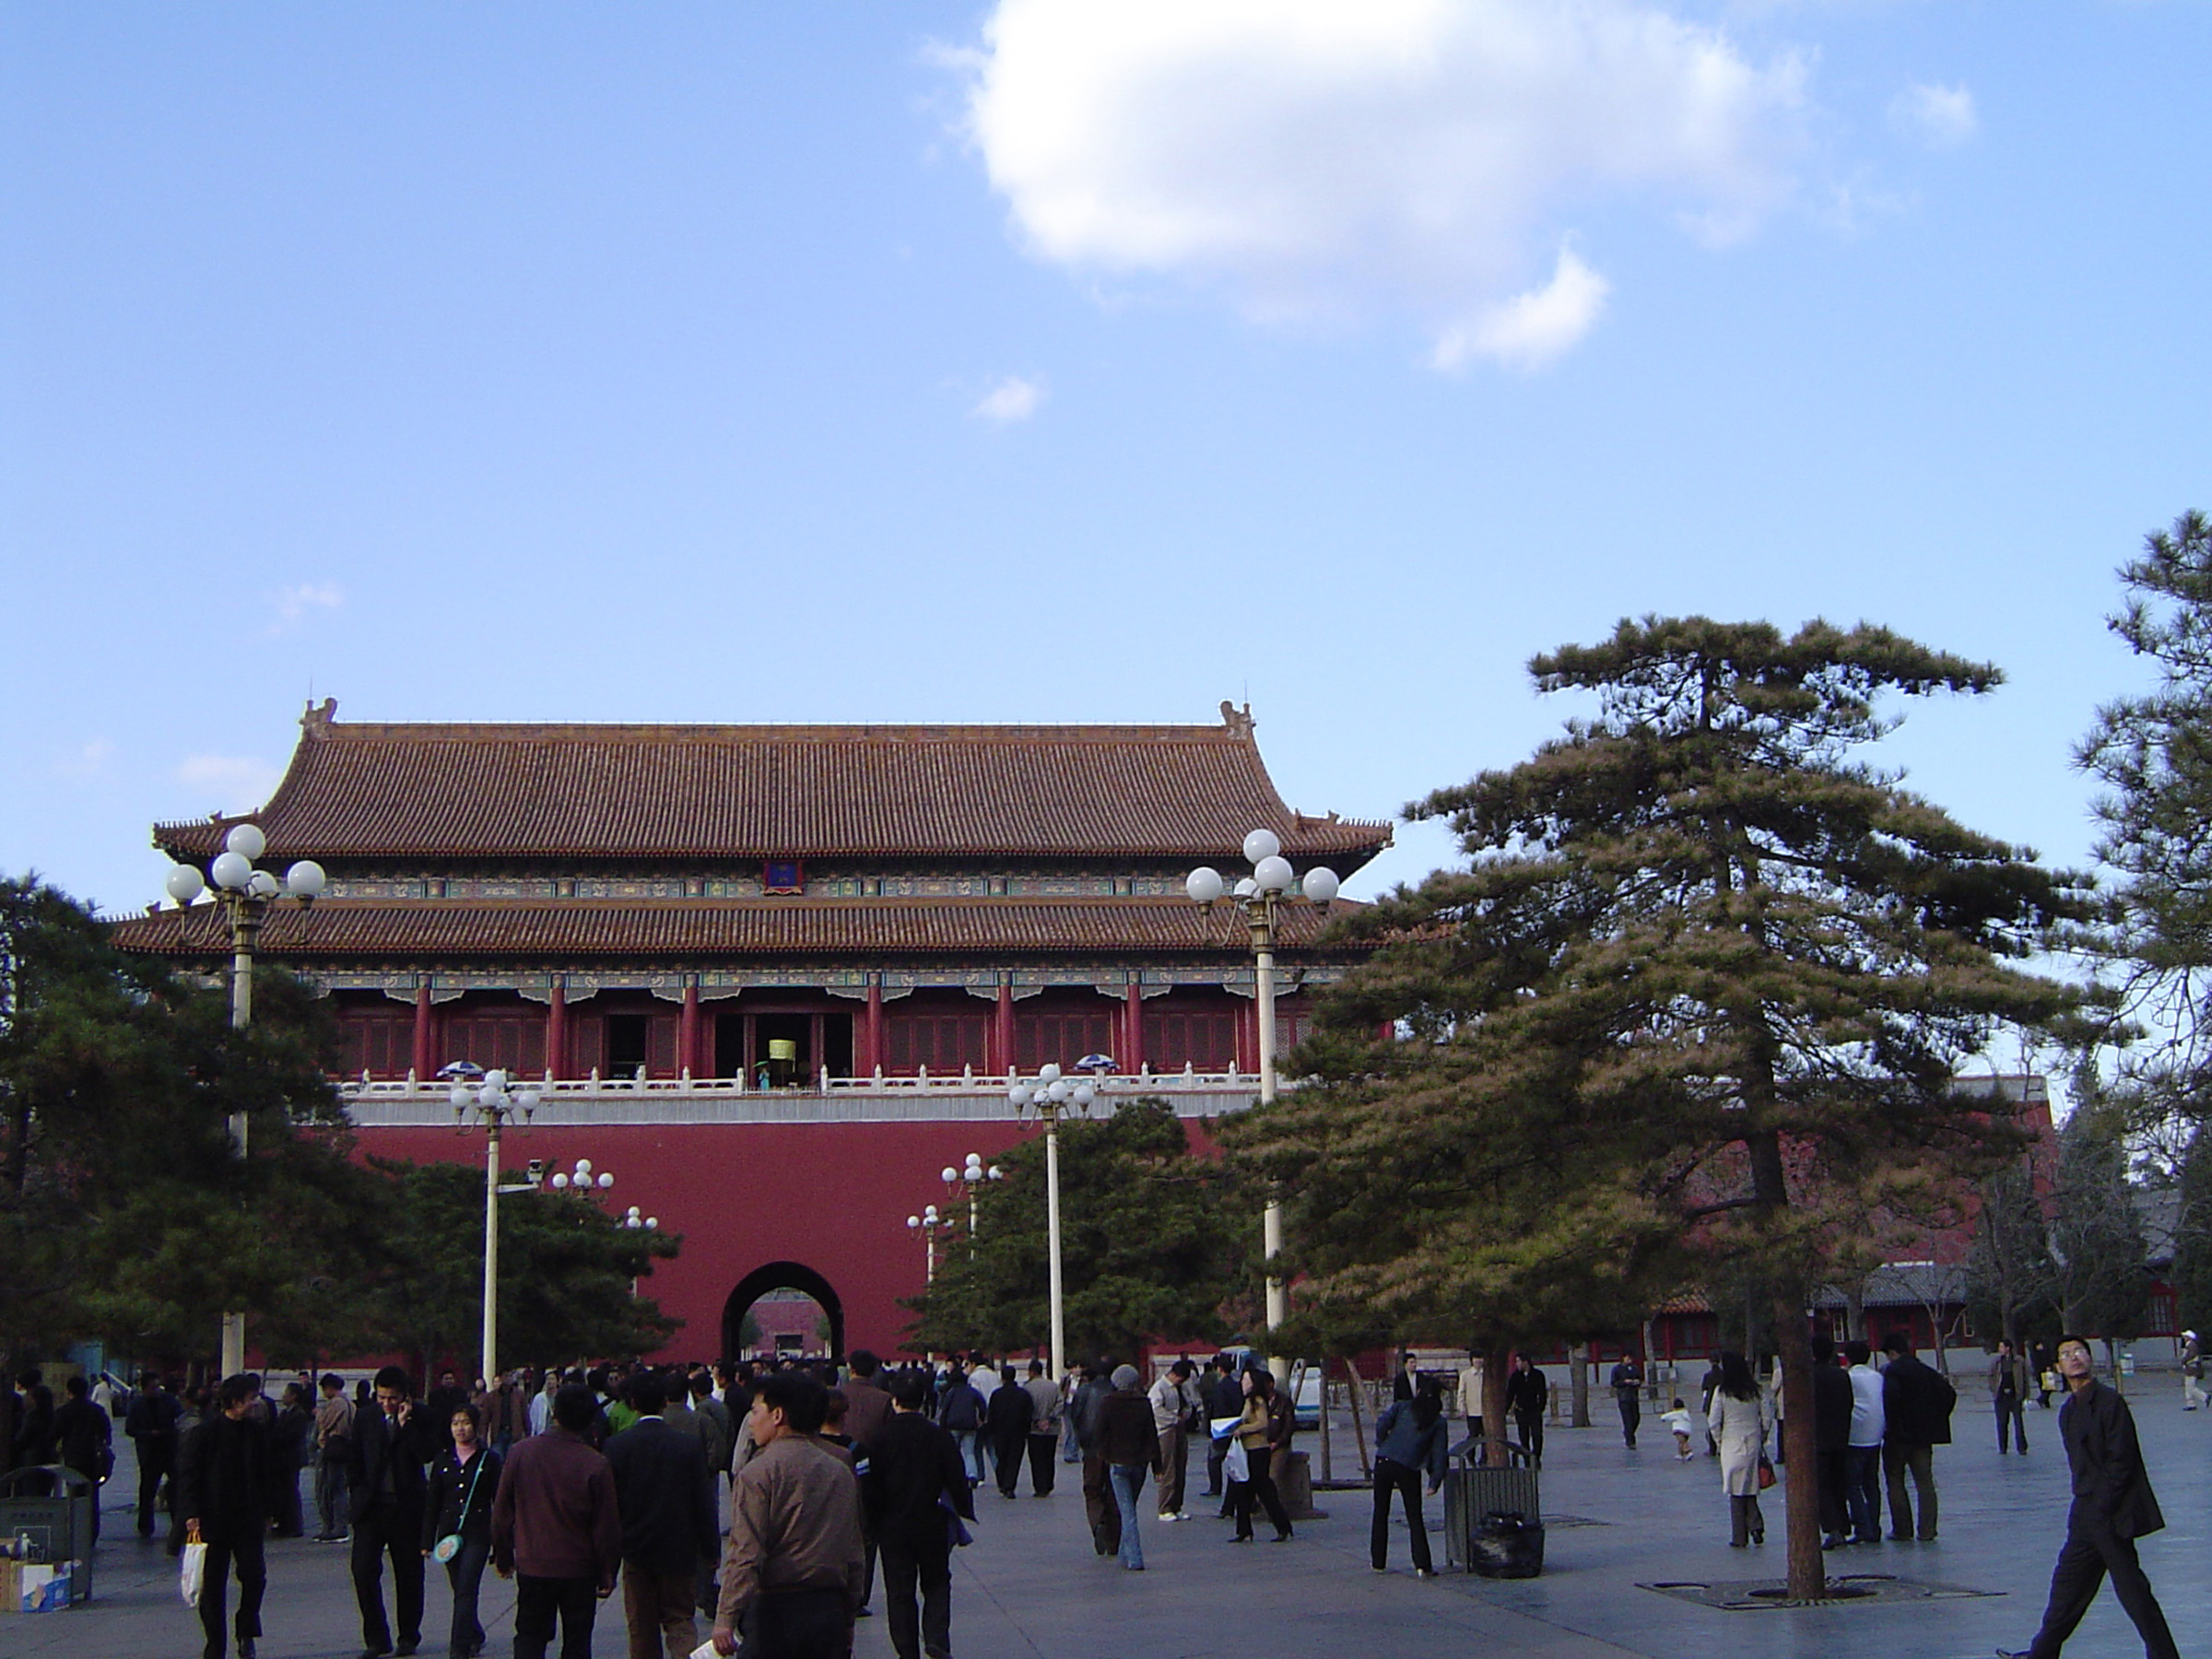 Random Visitors at Famous Architectural Forbidden City, a Chinese Imperial Palace, Located in Beijing China